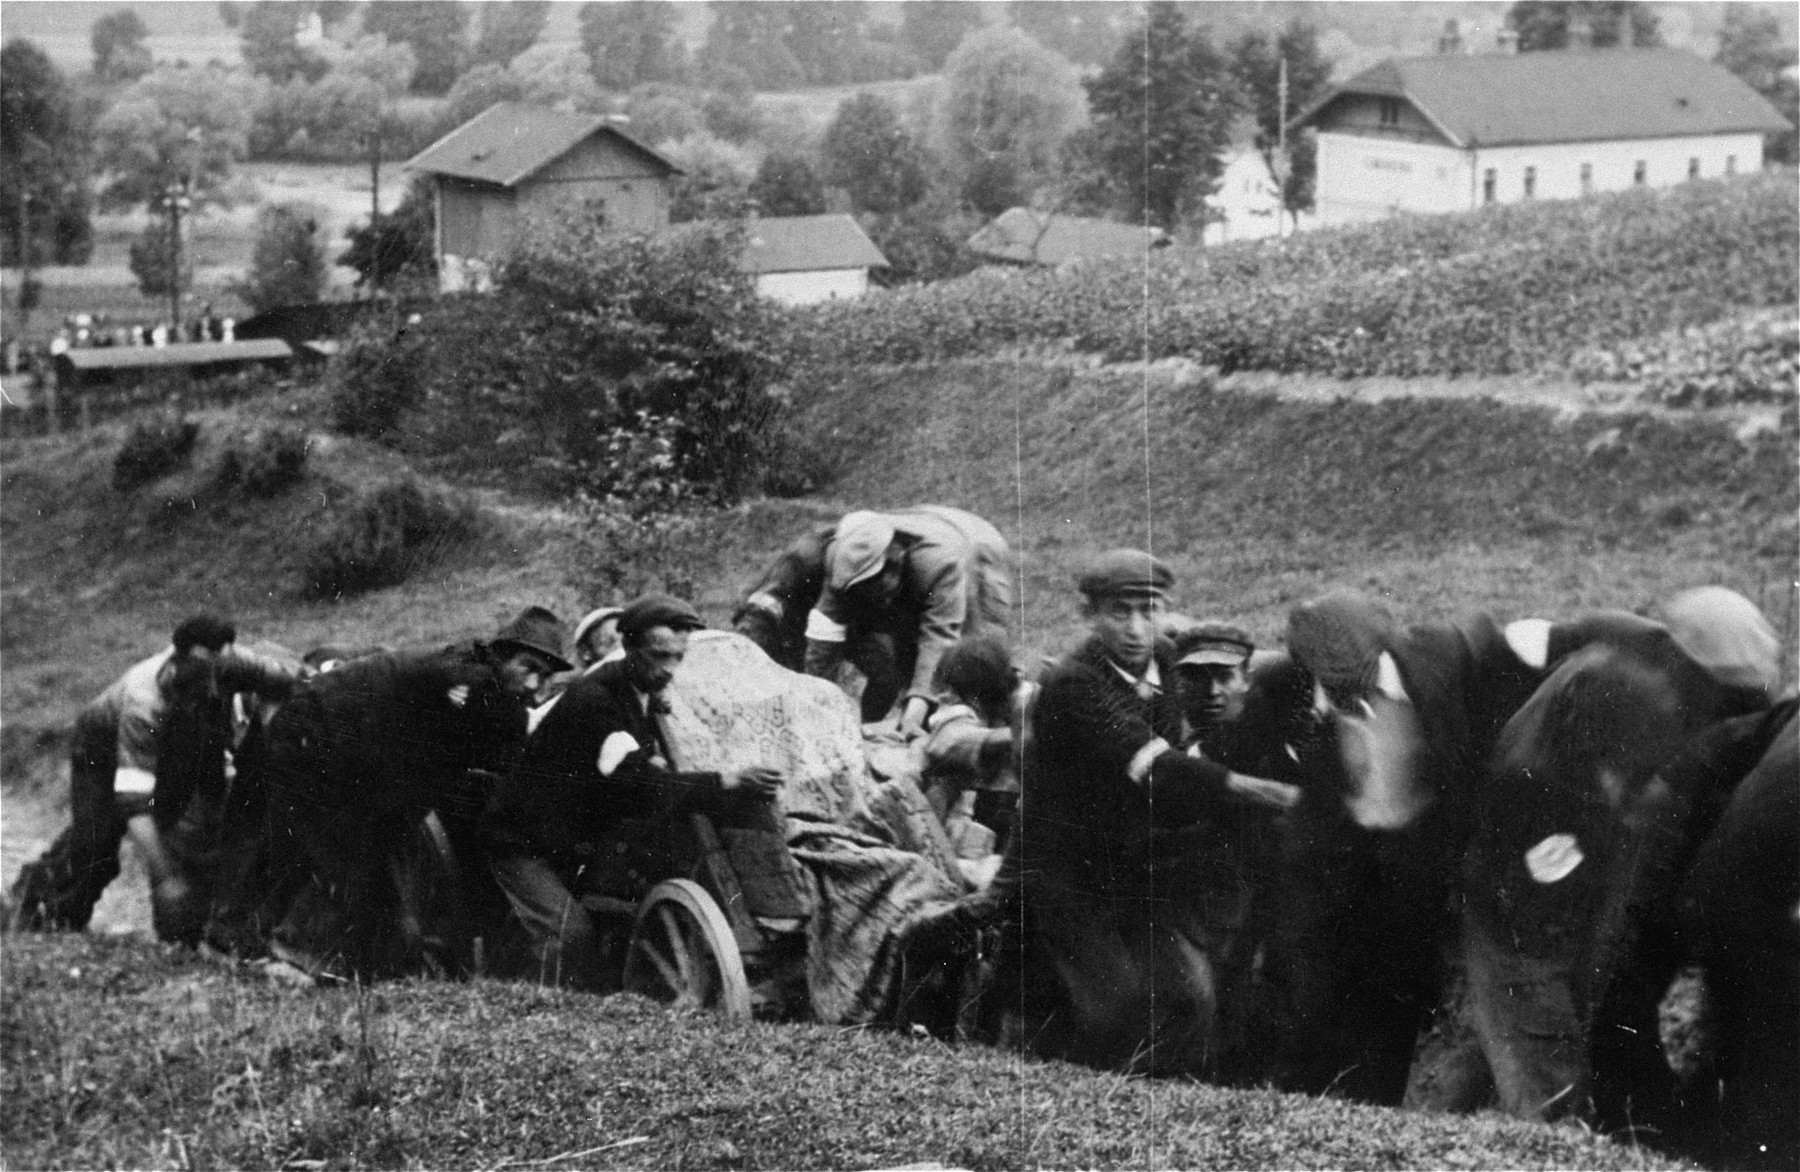 The bodies of sixty Jews from Limanowa who were executed in the Jewish cemetery, are moved to a burial site.  A group of Jewish men wearing armbands pulls a wagon loaded with the corpses along an unpaved path.